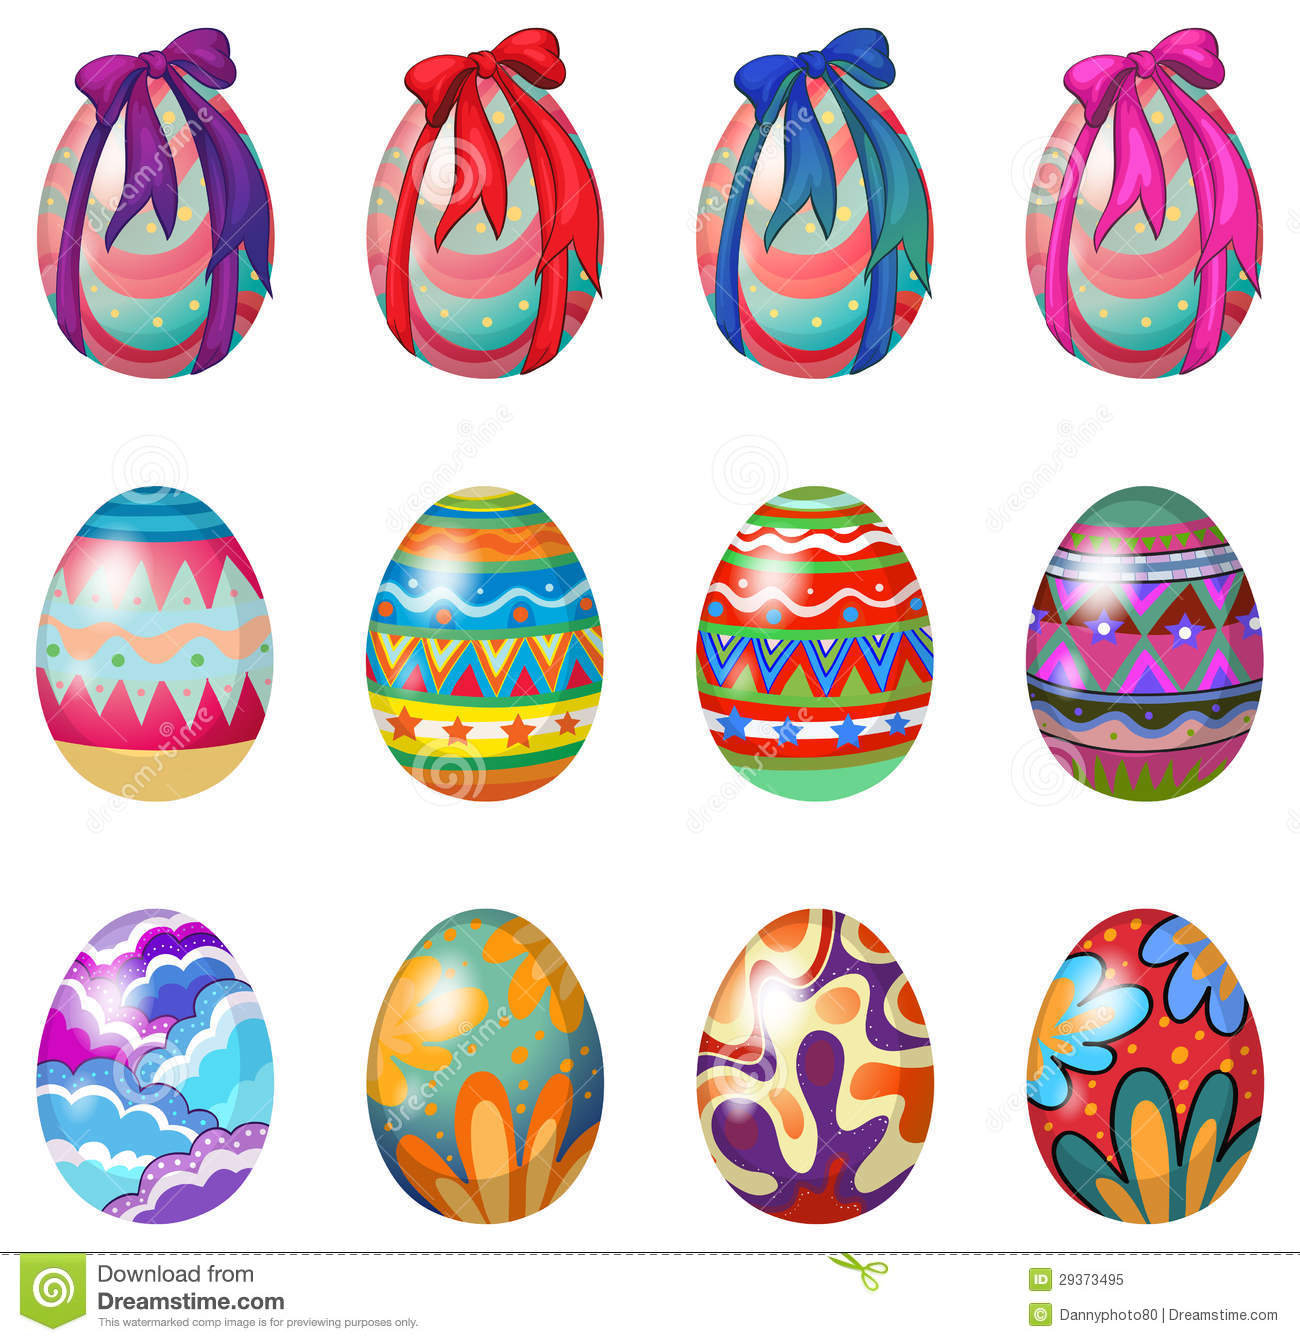 Top 28 Designs For Easter Eggs Inspire Bohemia Easter